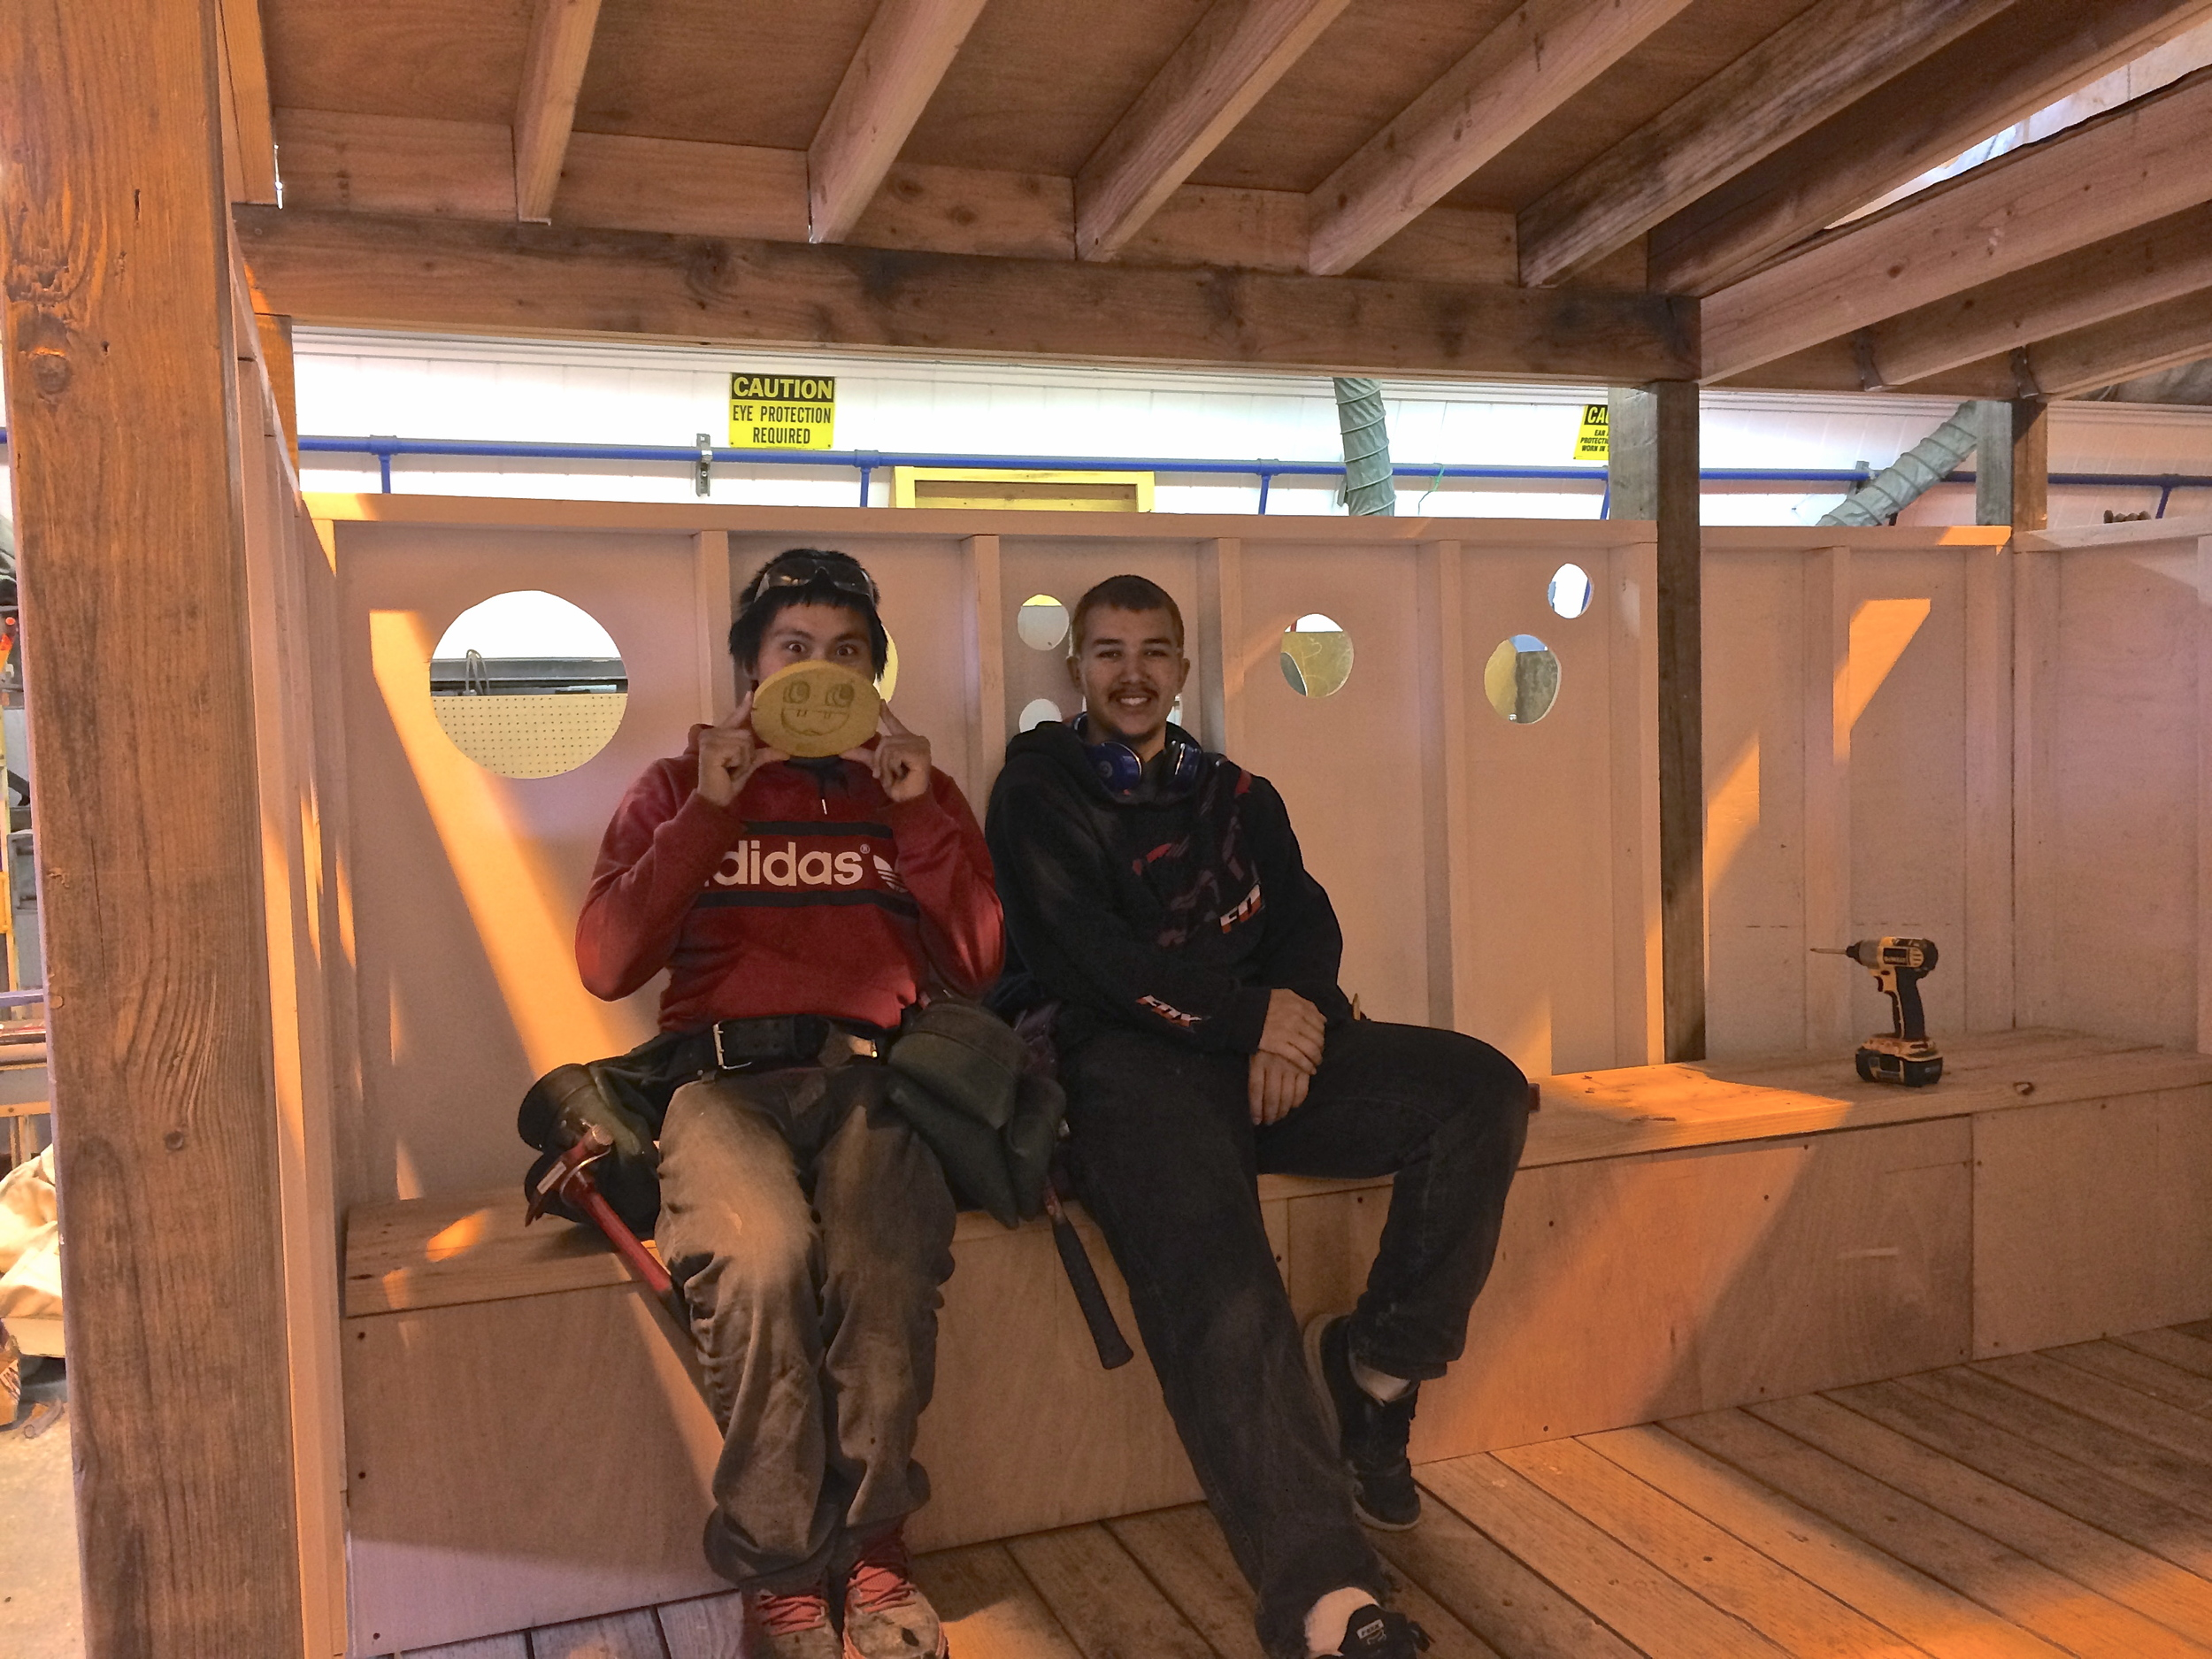 Dennis and Branham take a break on the bench they built.